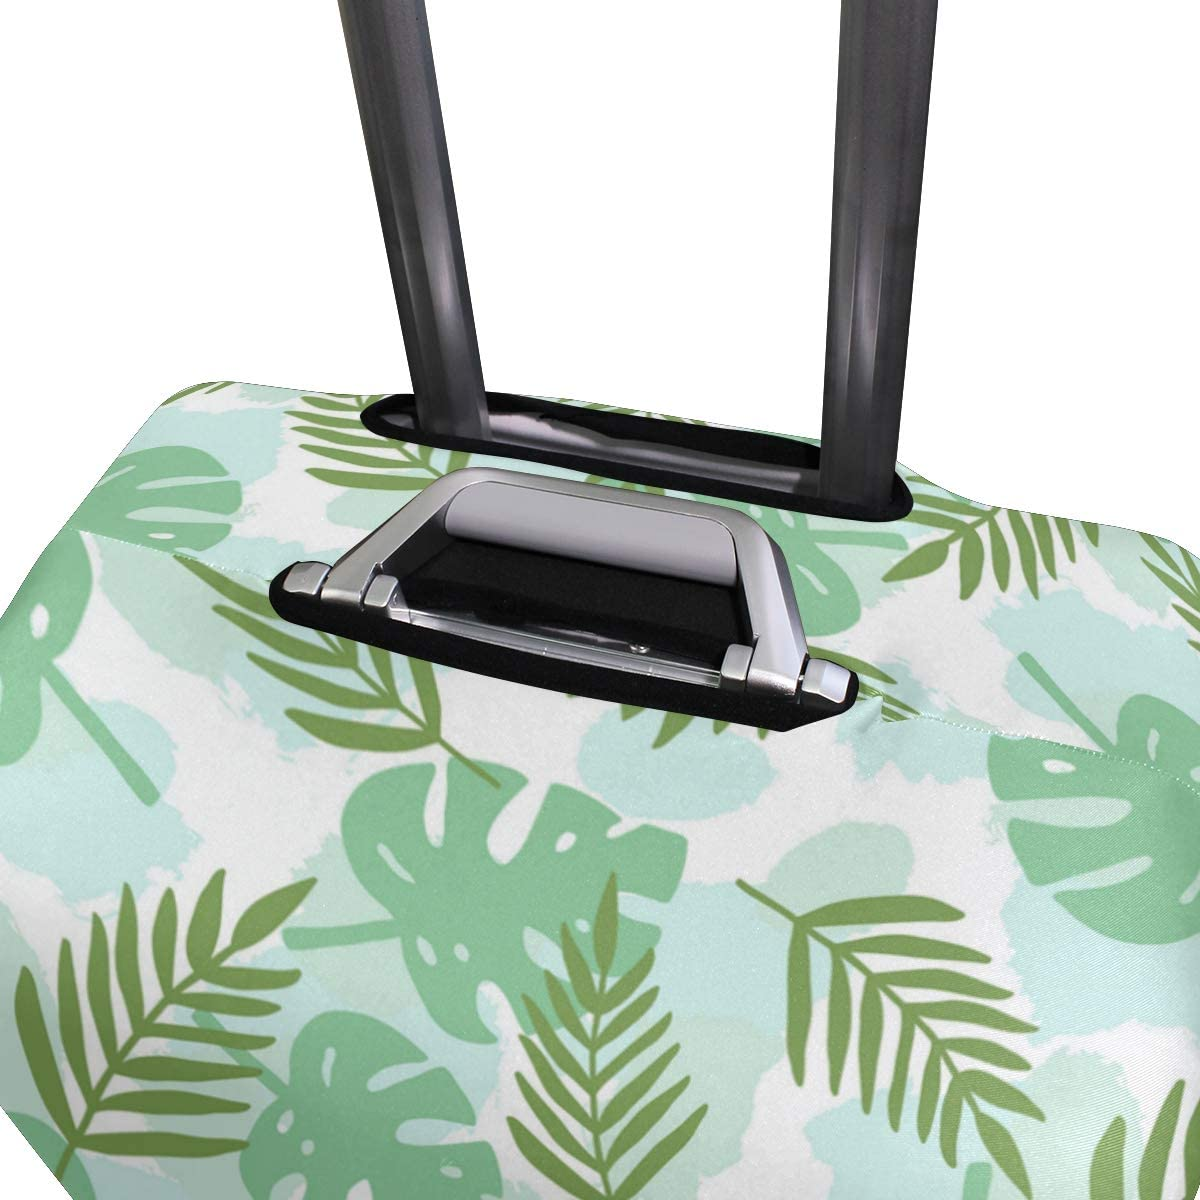 Banana Leaf Furniture Traveler Lightweight Rotating Luggage Protector Case Can Carry With You Can Expand Travel Bag Trolley Rolling Luggage Protector Case